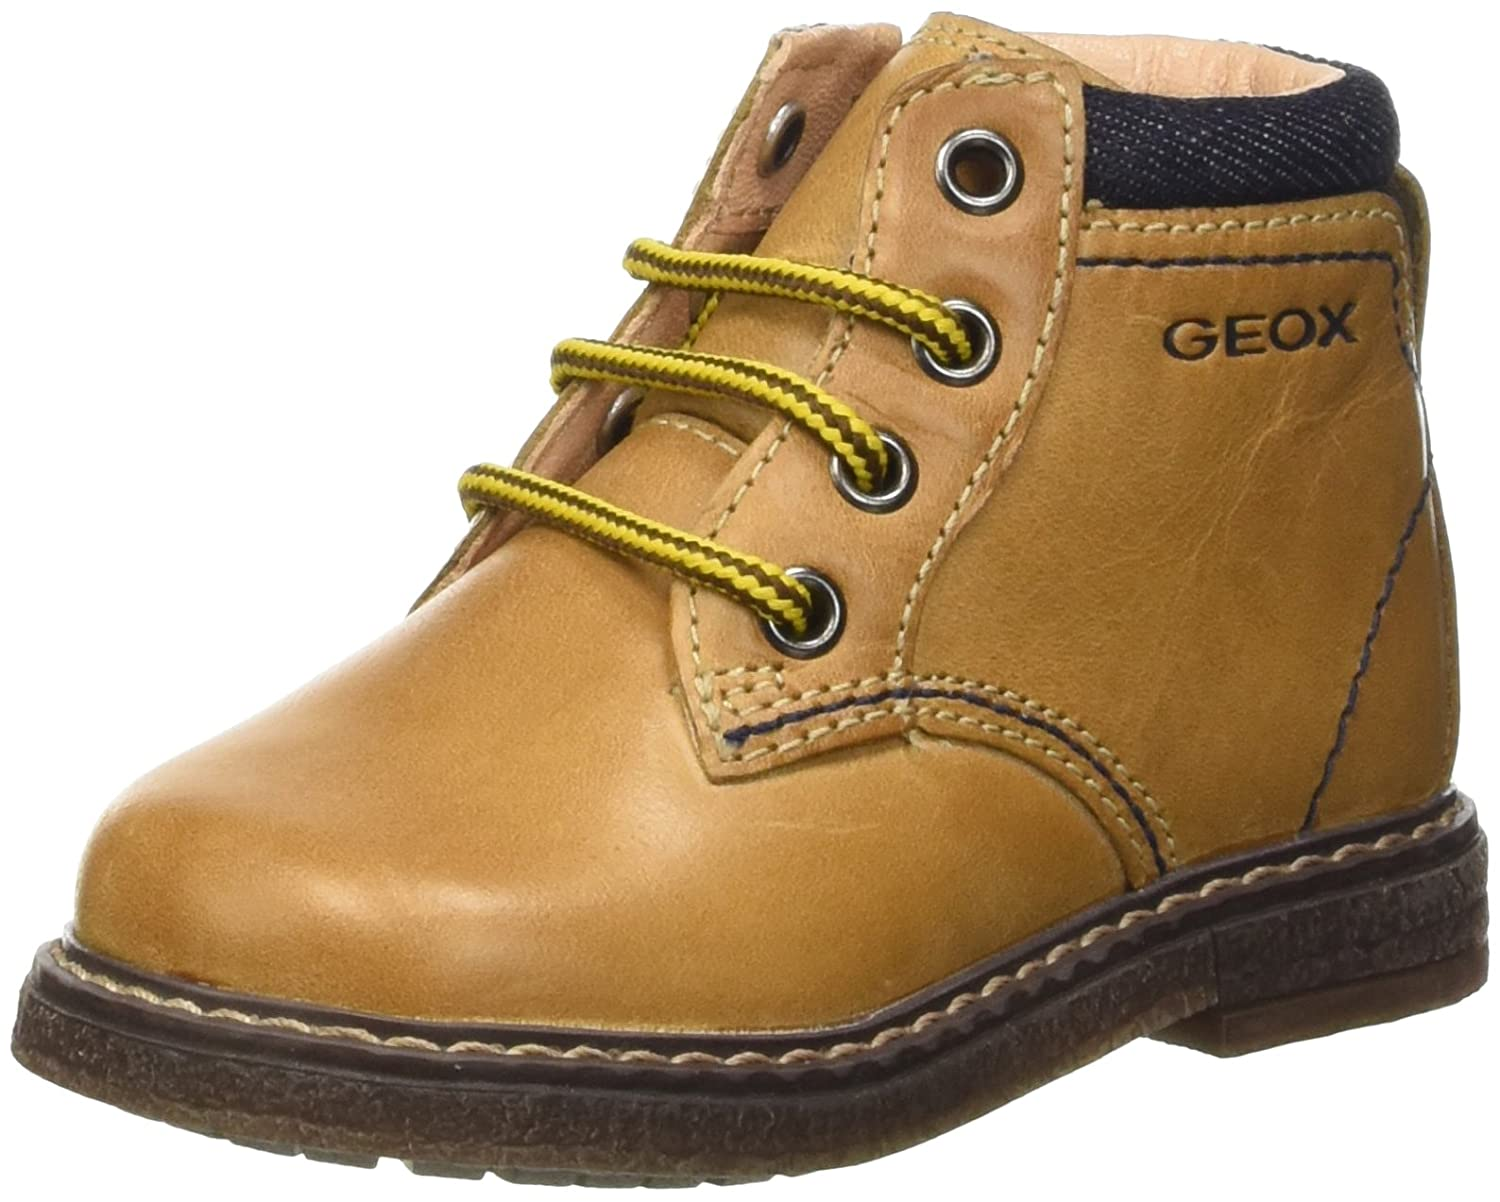 Geox Baby Boys' B Glimmer D Classic Boots